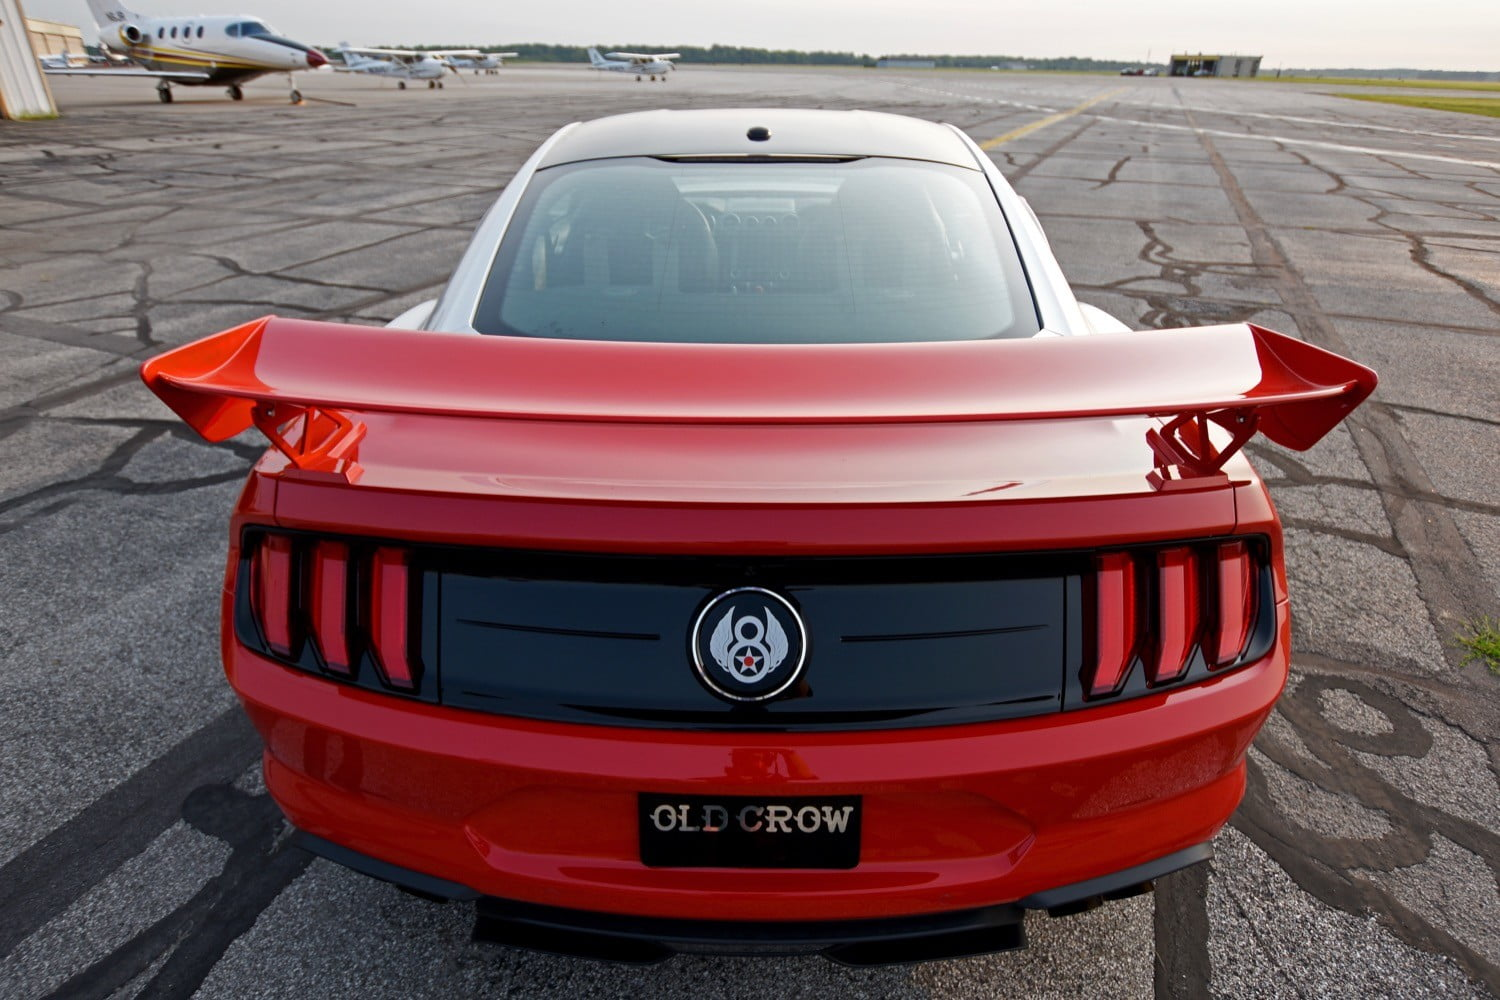 ford and roush old crow mustang gt